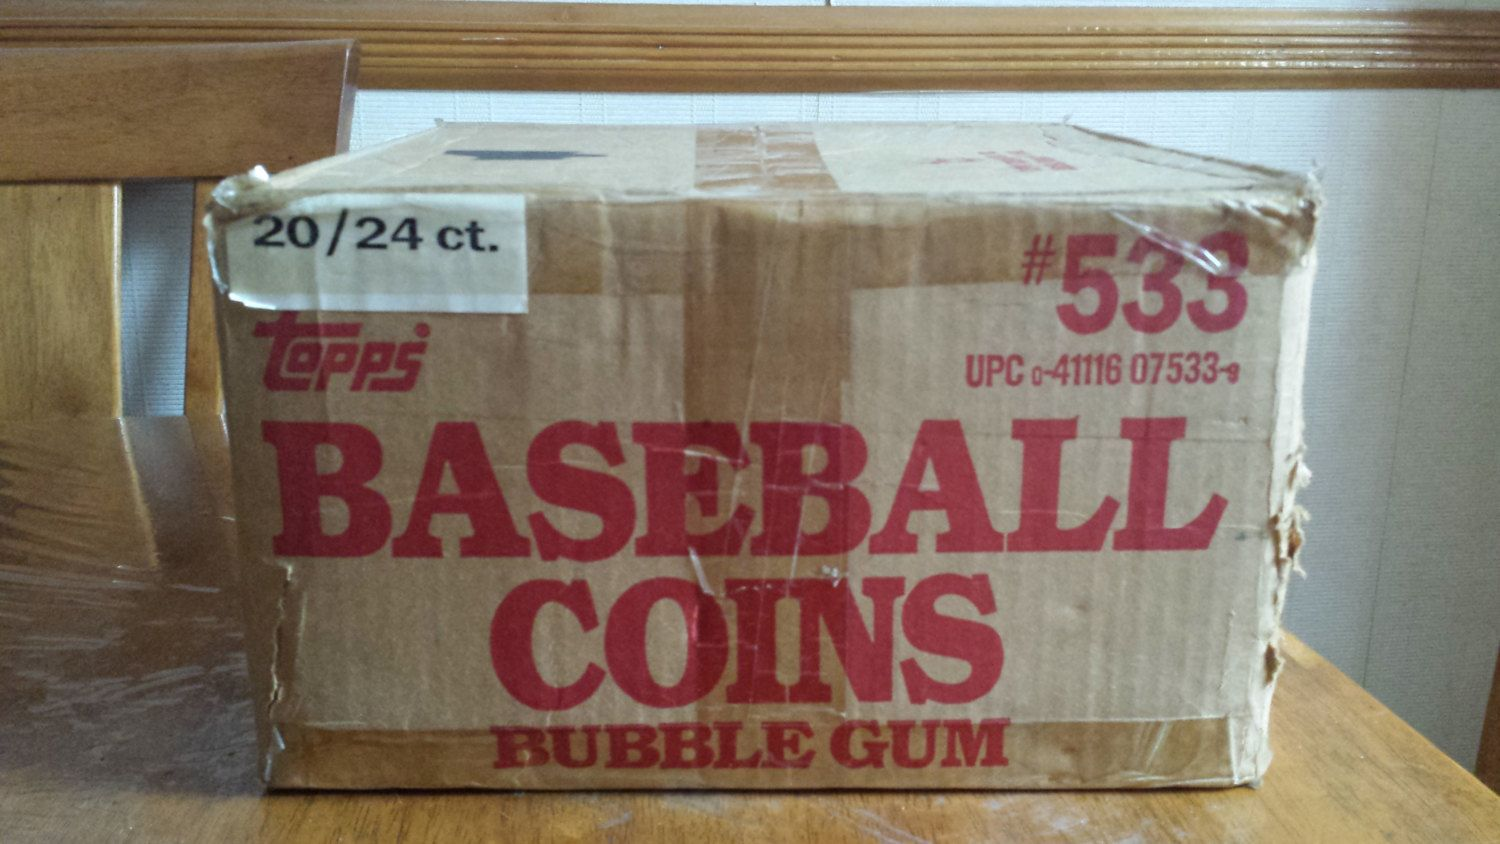 1987 topps baseball coins 20 box count sealed case best